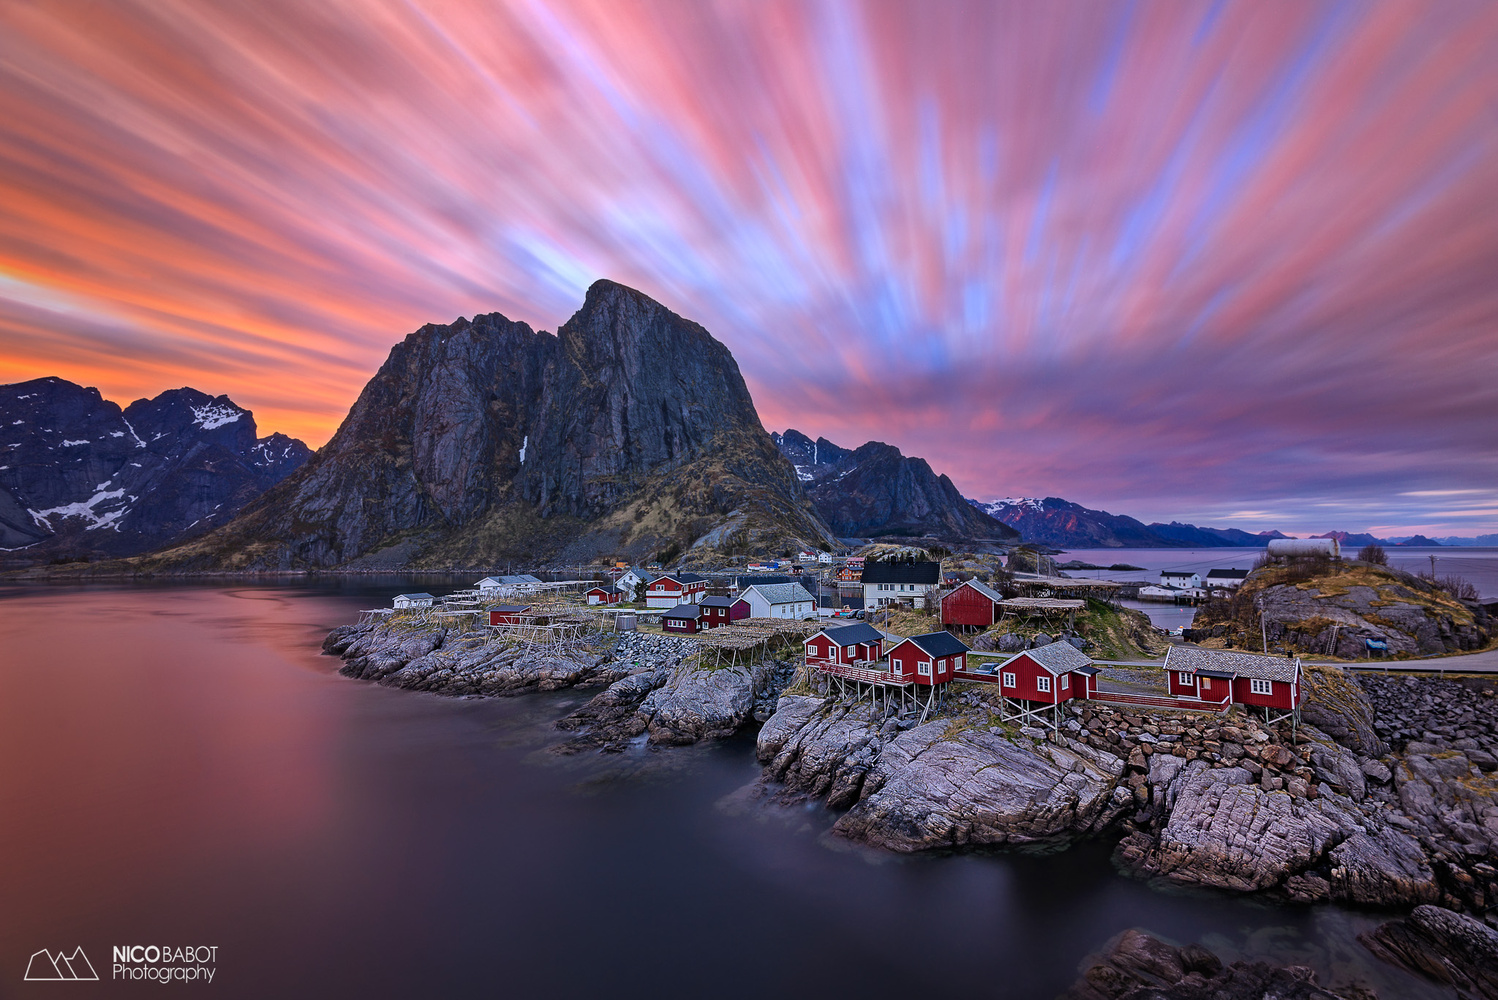 The longest sunset in my life. by Nico BABOT